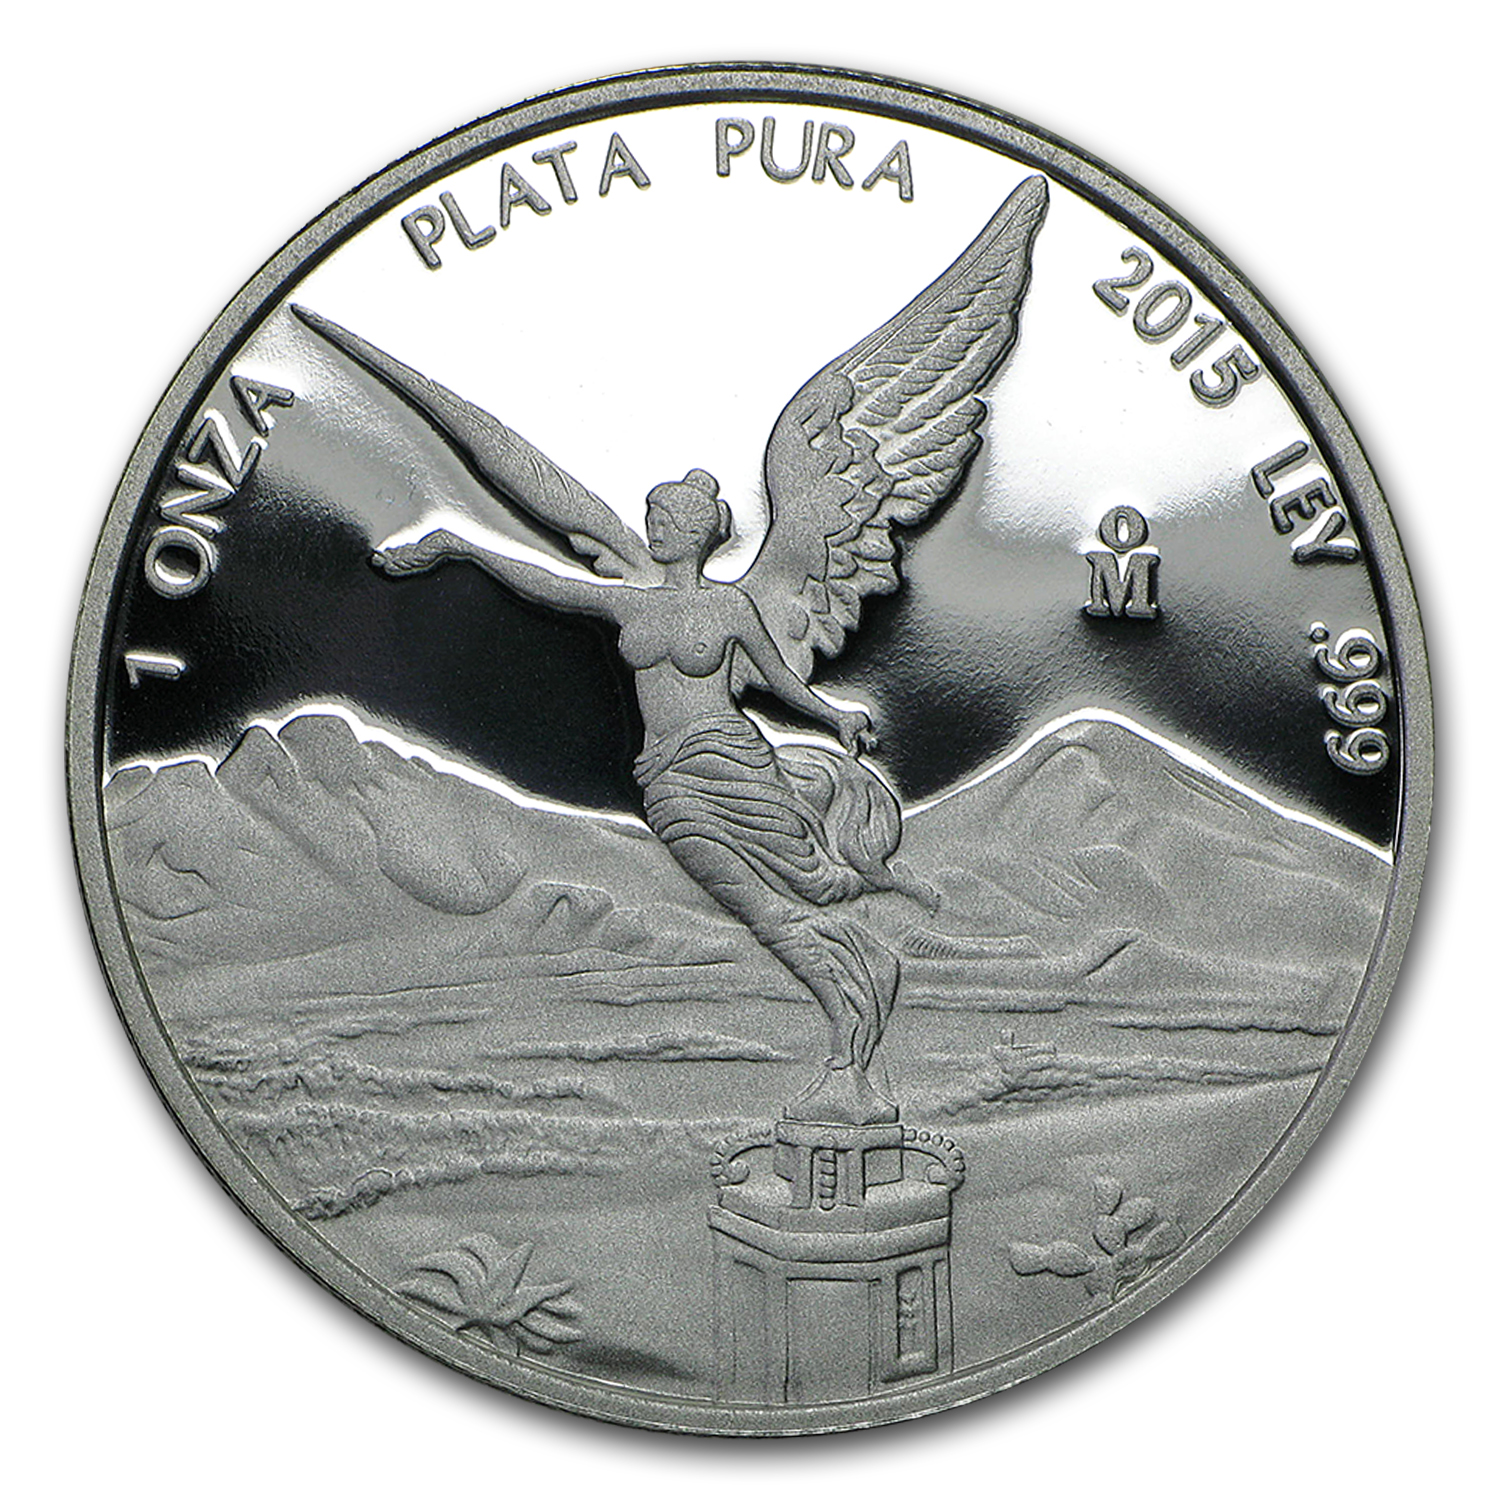 2015 Mexico 1 oz Silver Libertad Proof (In Capsule)